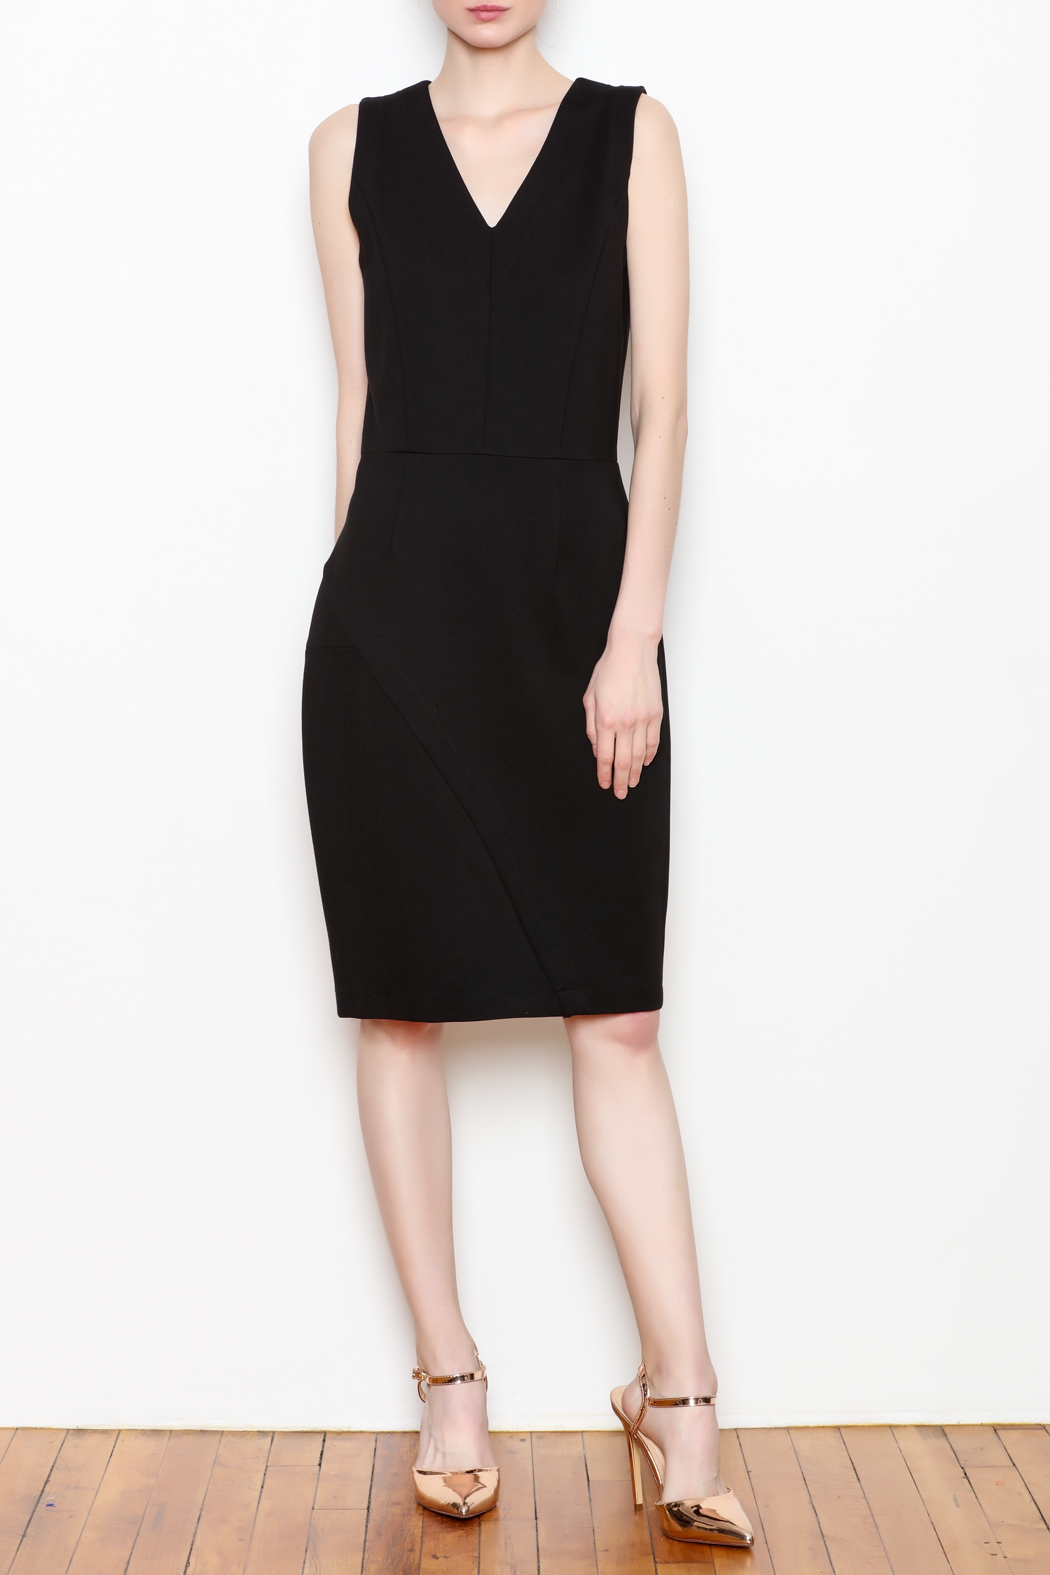 26Line by MLNK Black Sheath Dress - Front Full Image